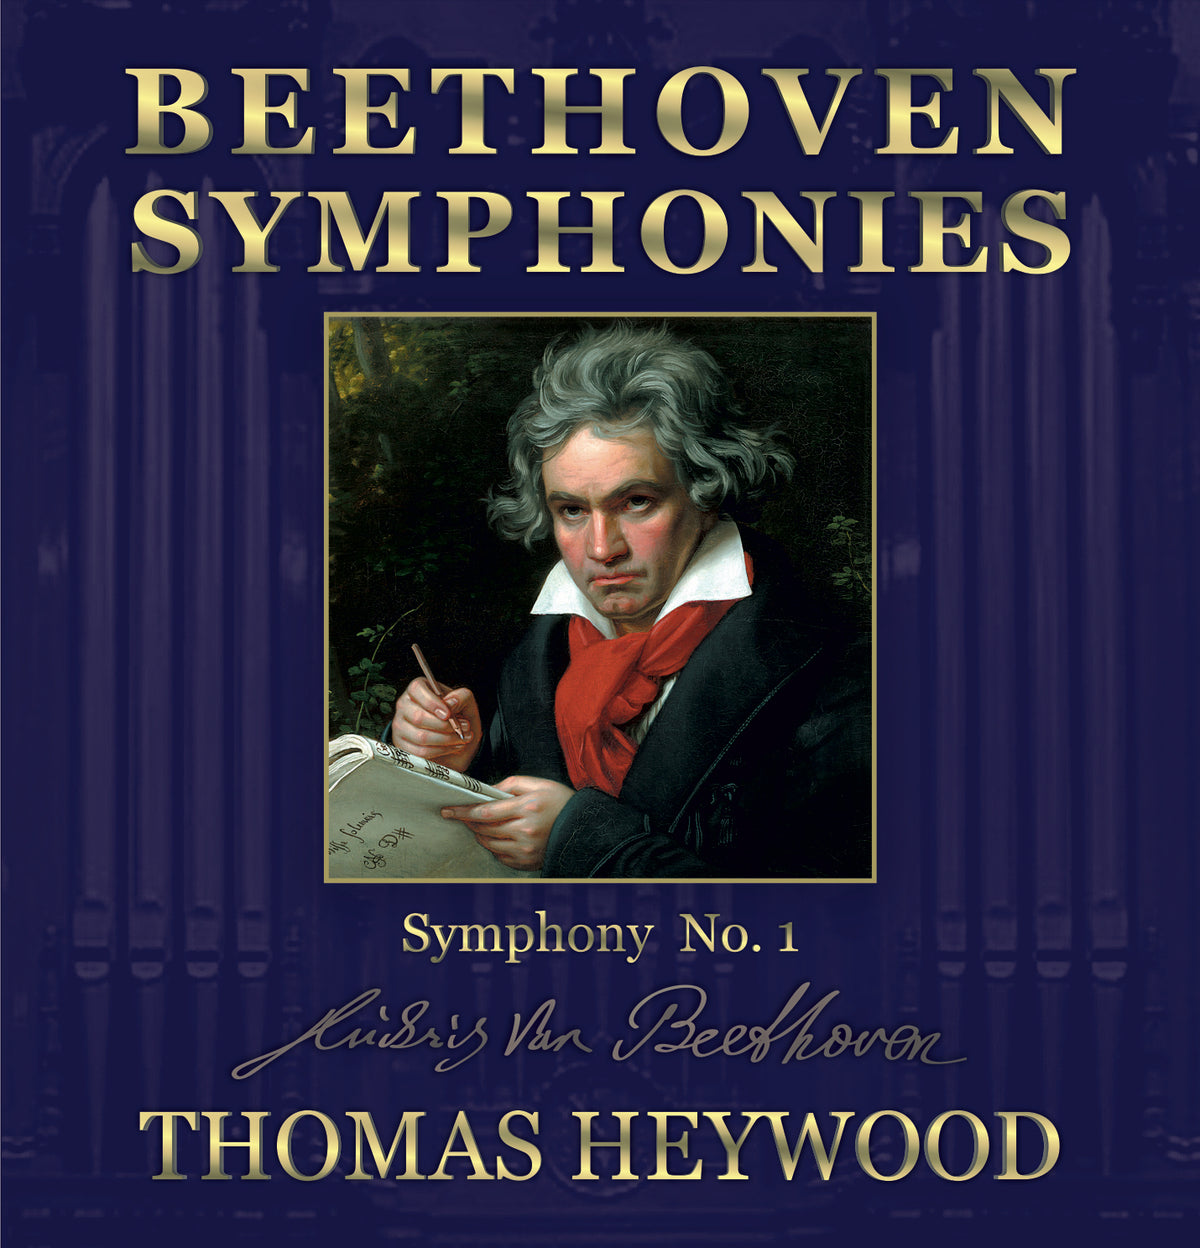 Beethoven/Heywood - Symphony No. 1 in C major, Op. 21 (MP3 Album) | Thomas Heywood | Concert Organ International